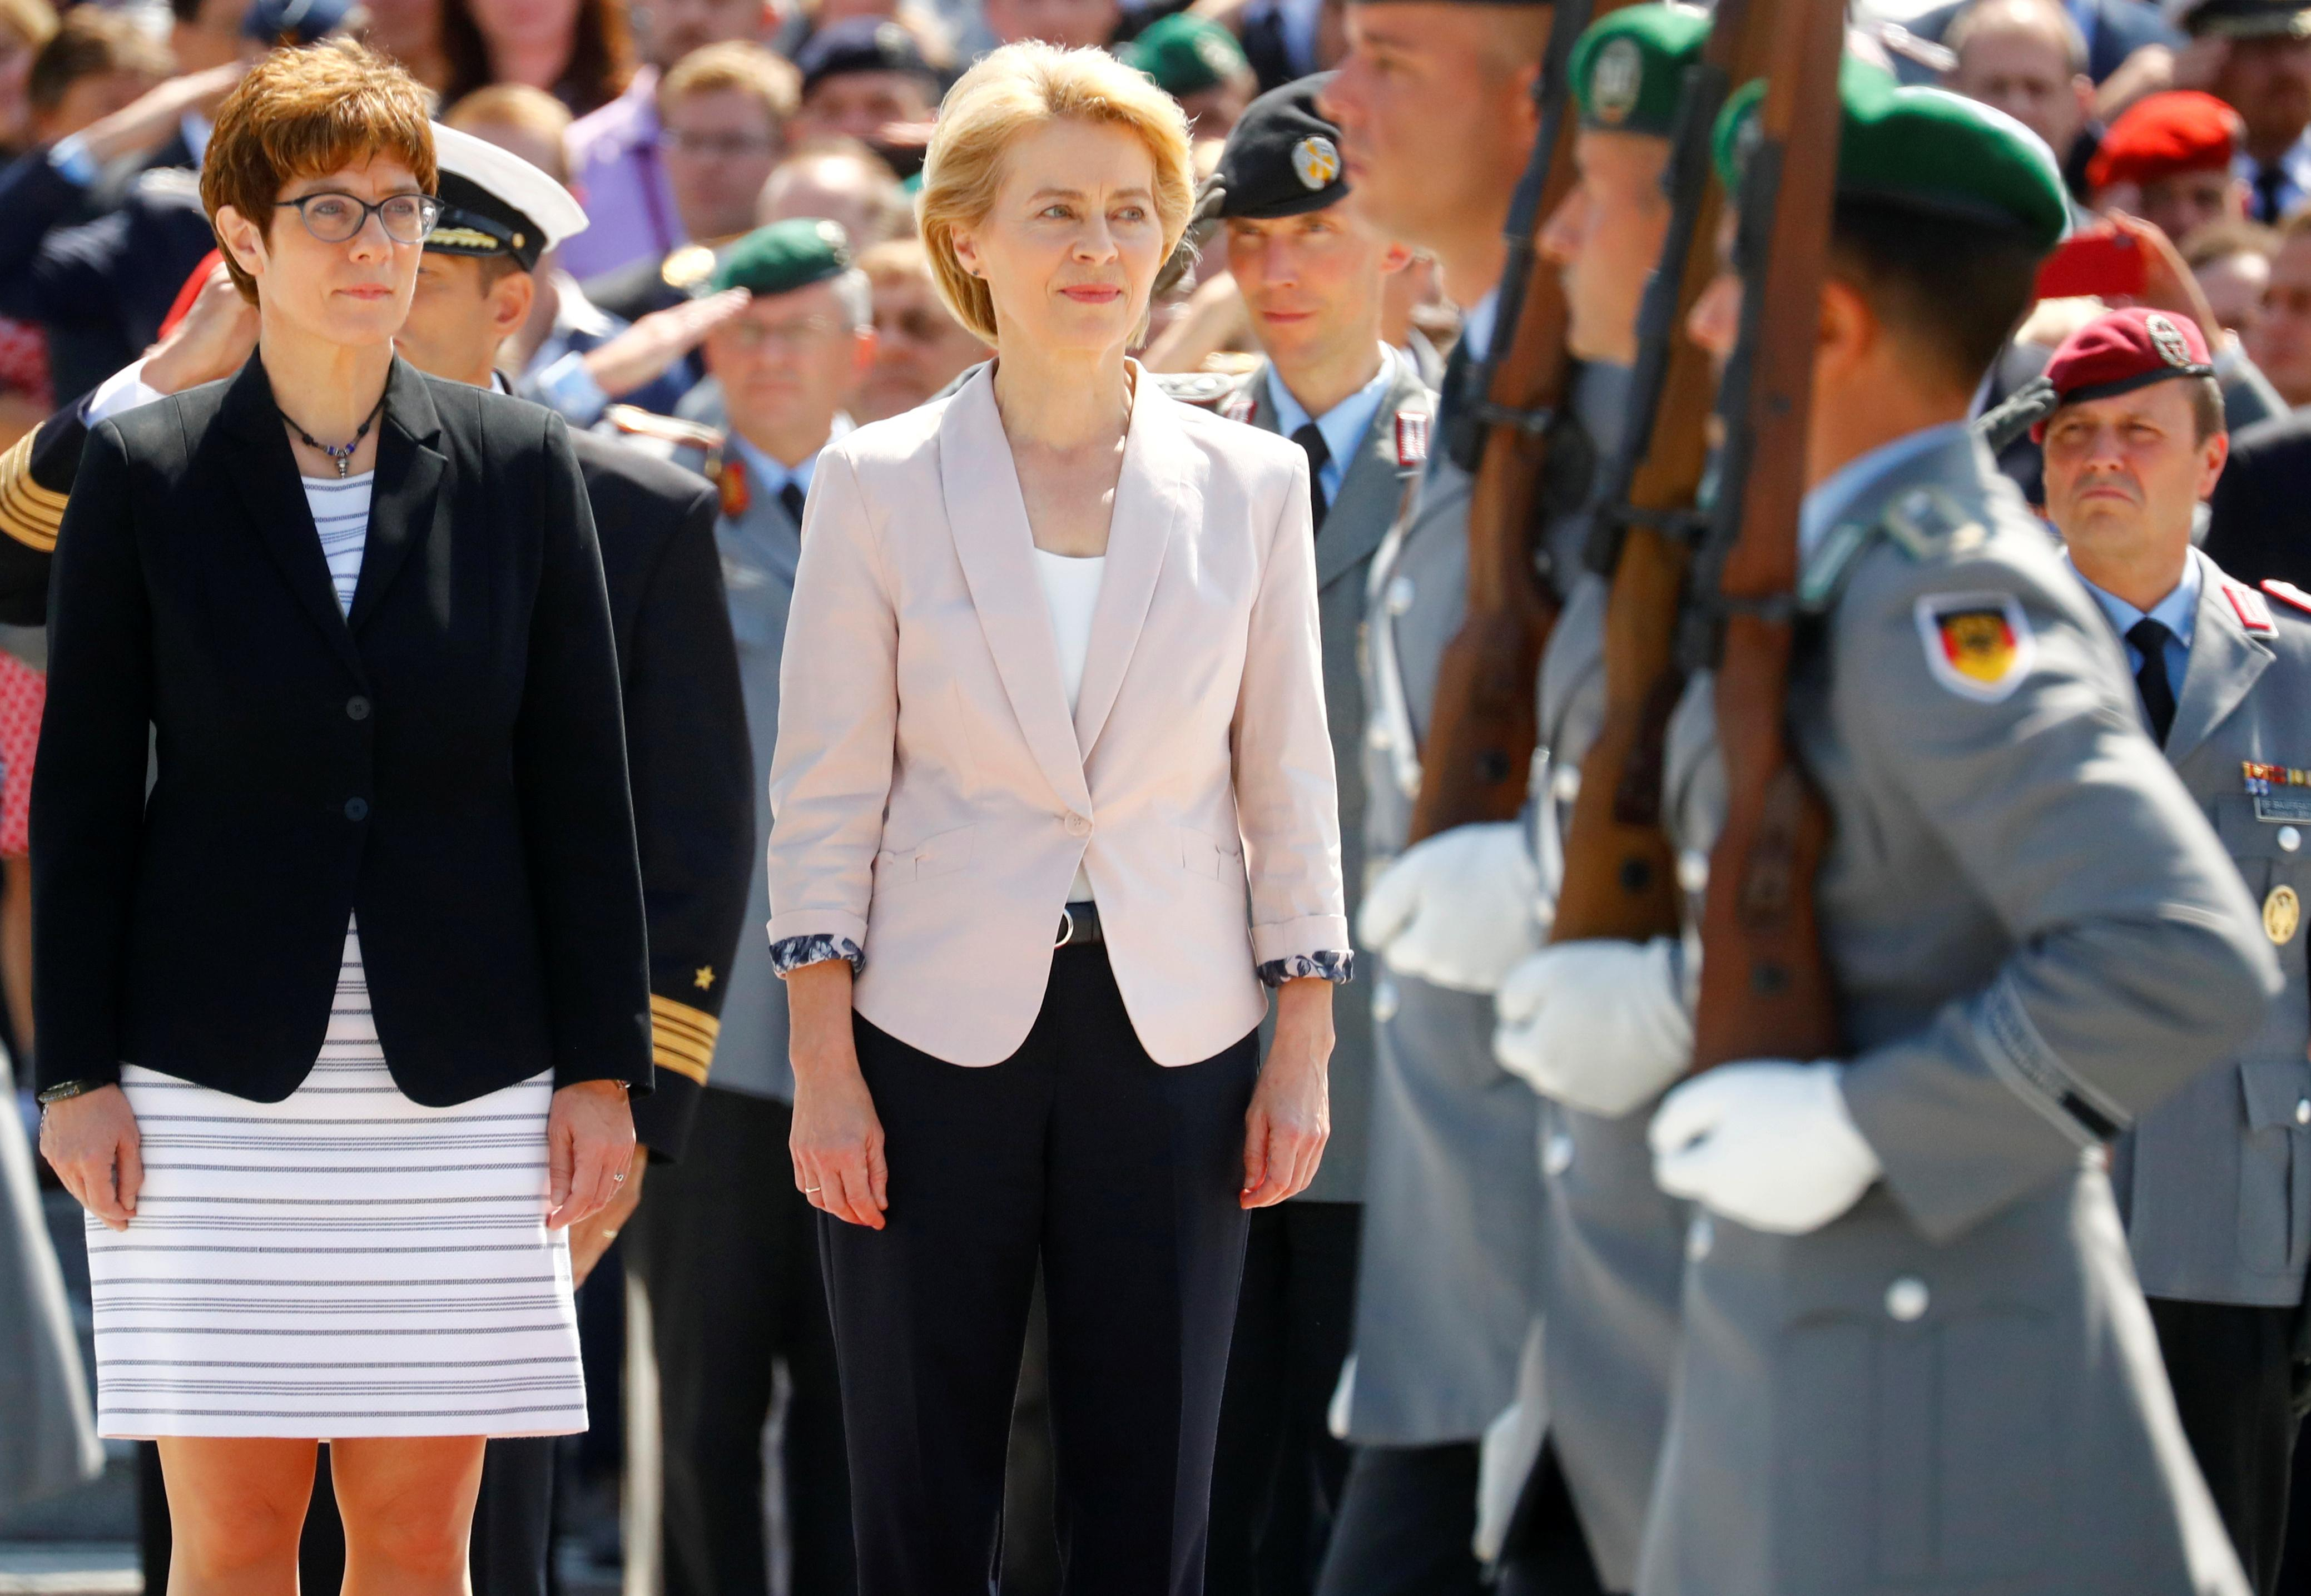 Path to power or poisoned chalice: Merkel protegee takes defense job